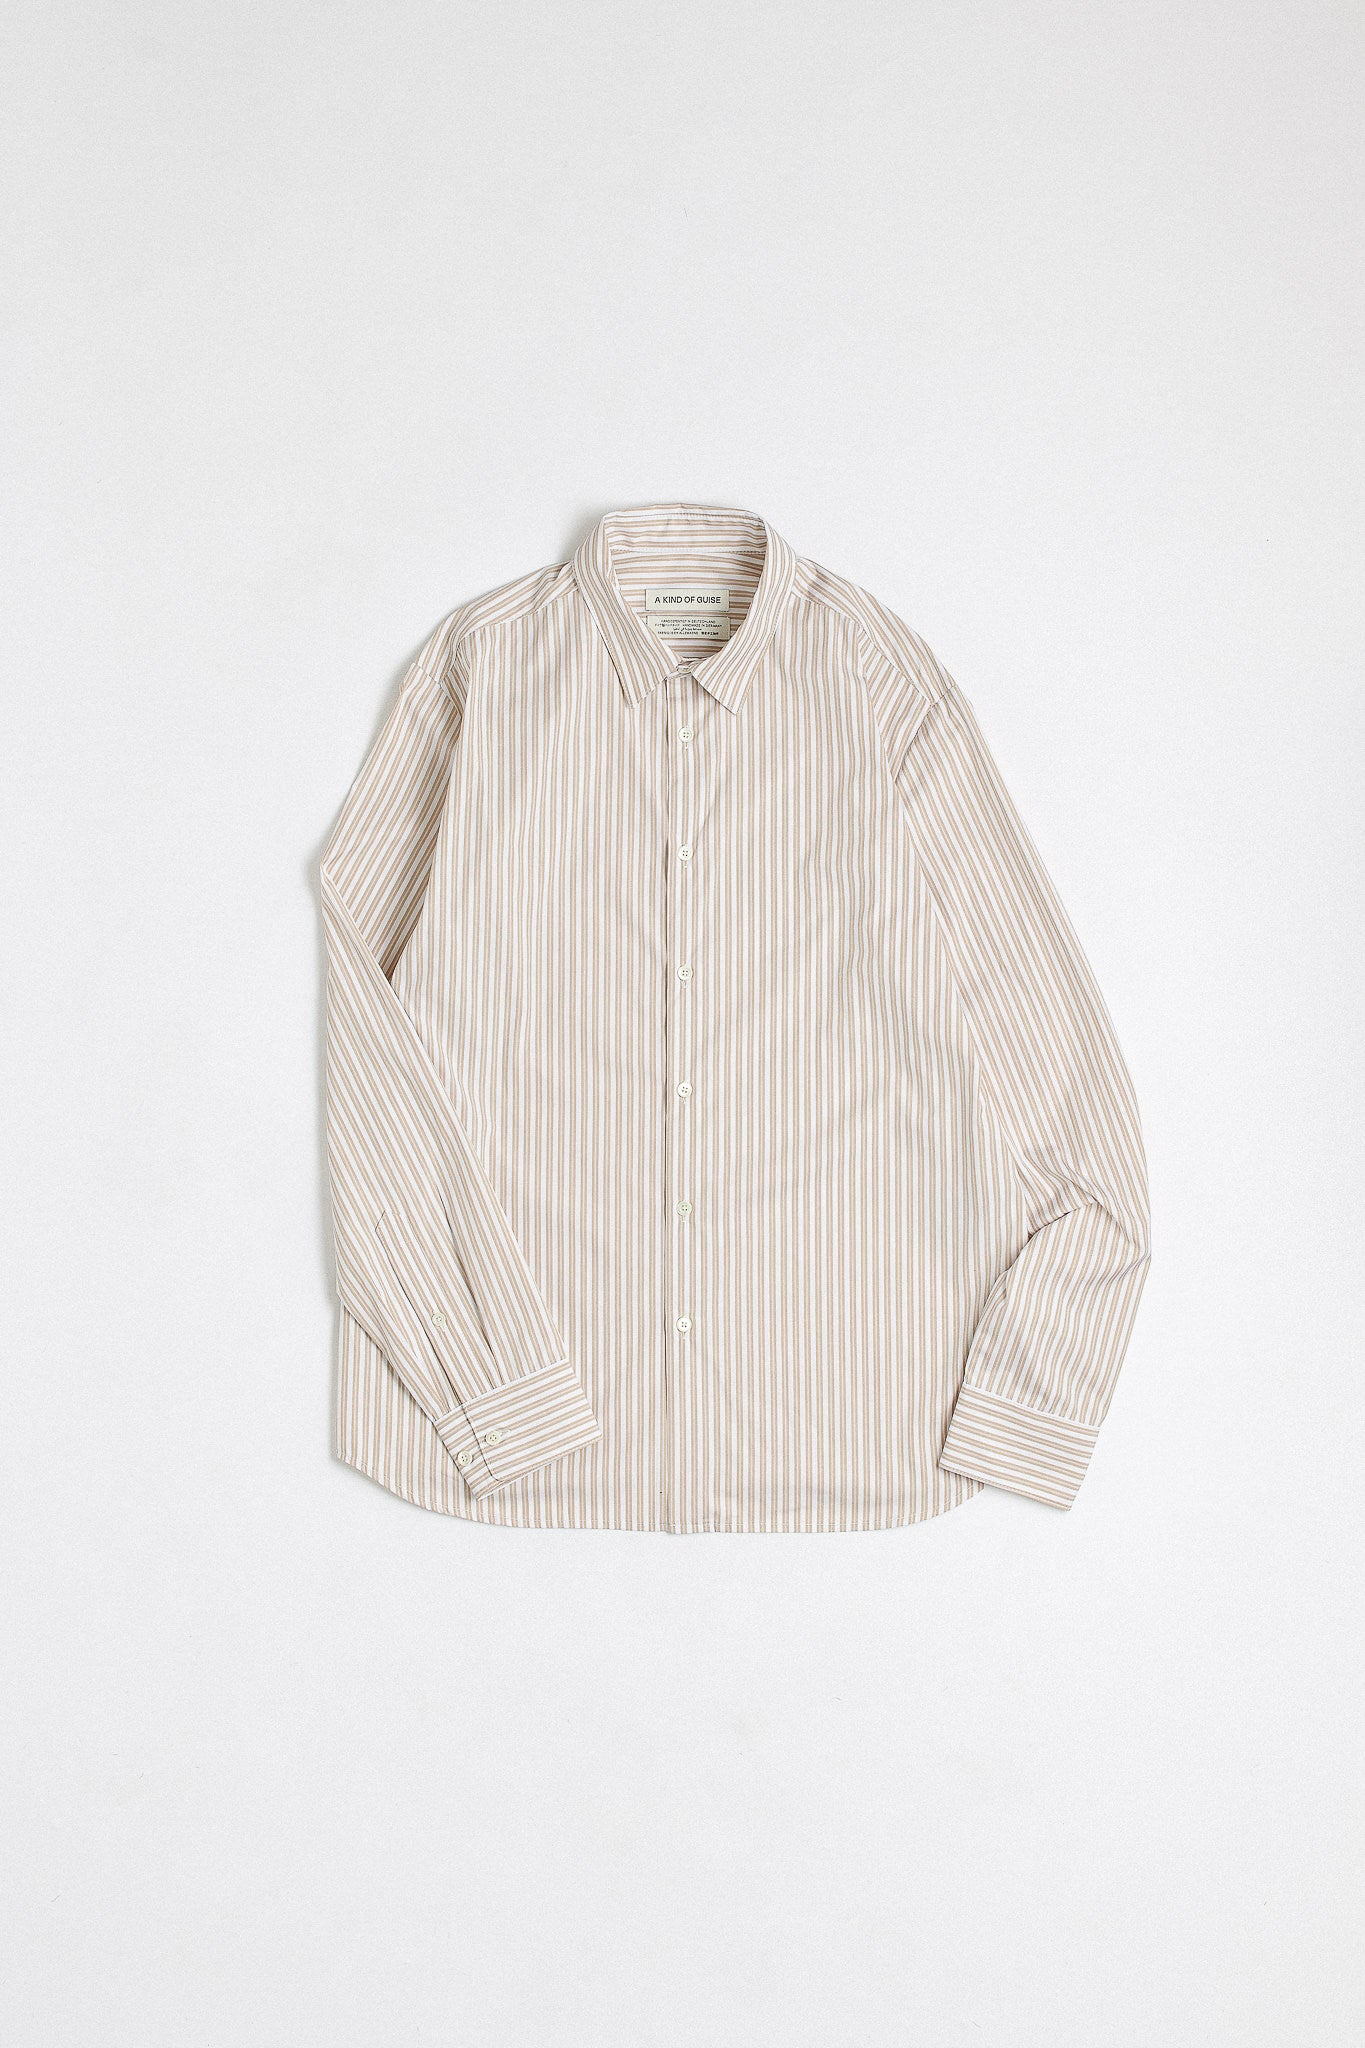 Flores shirt tobacco stripe